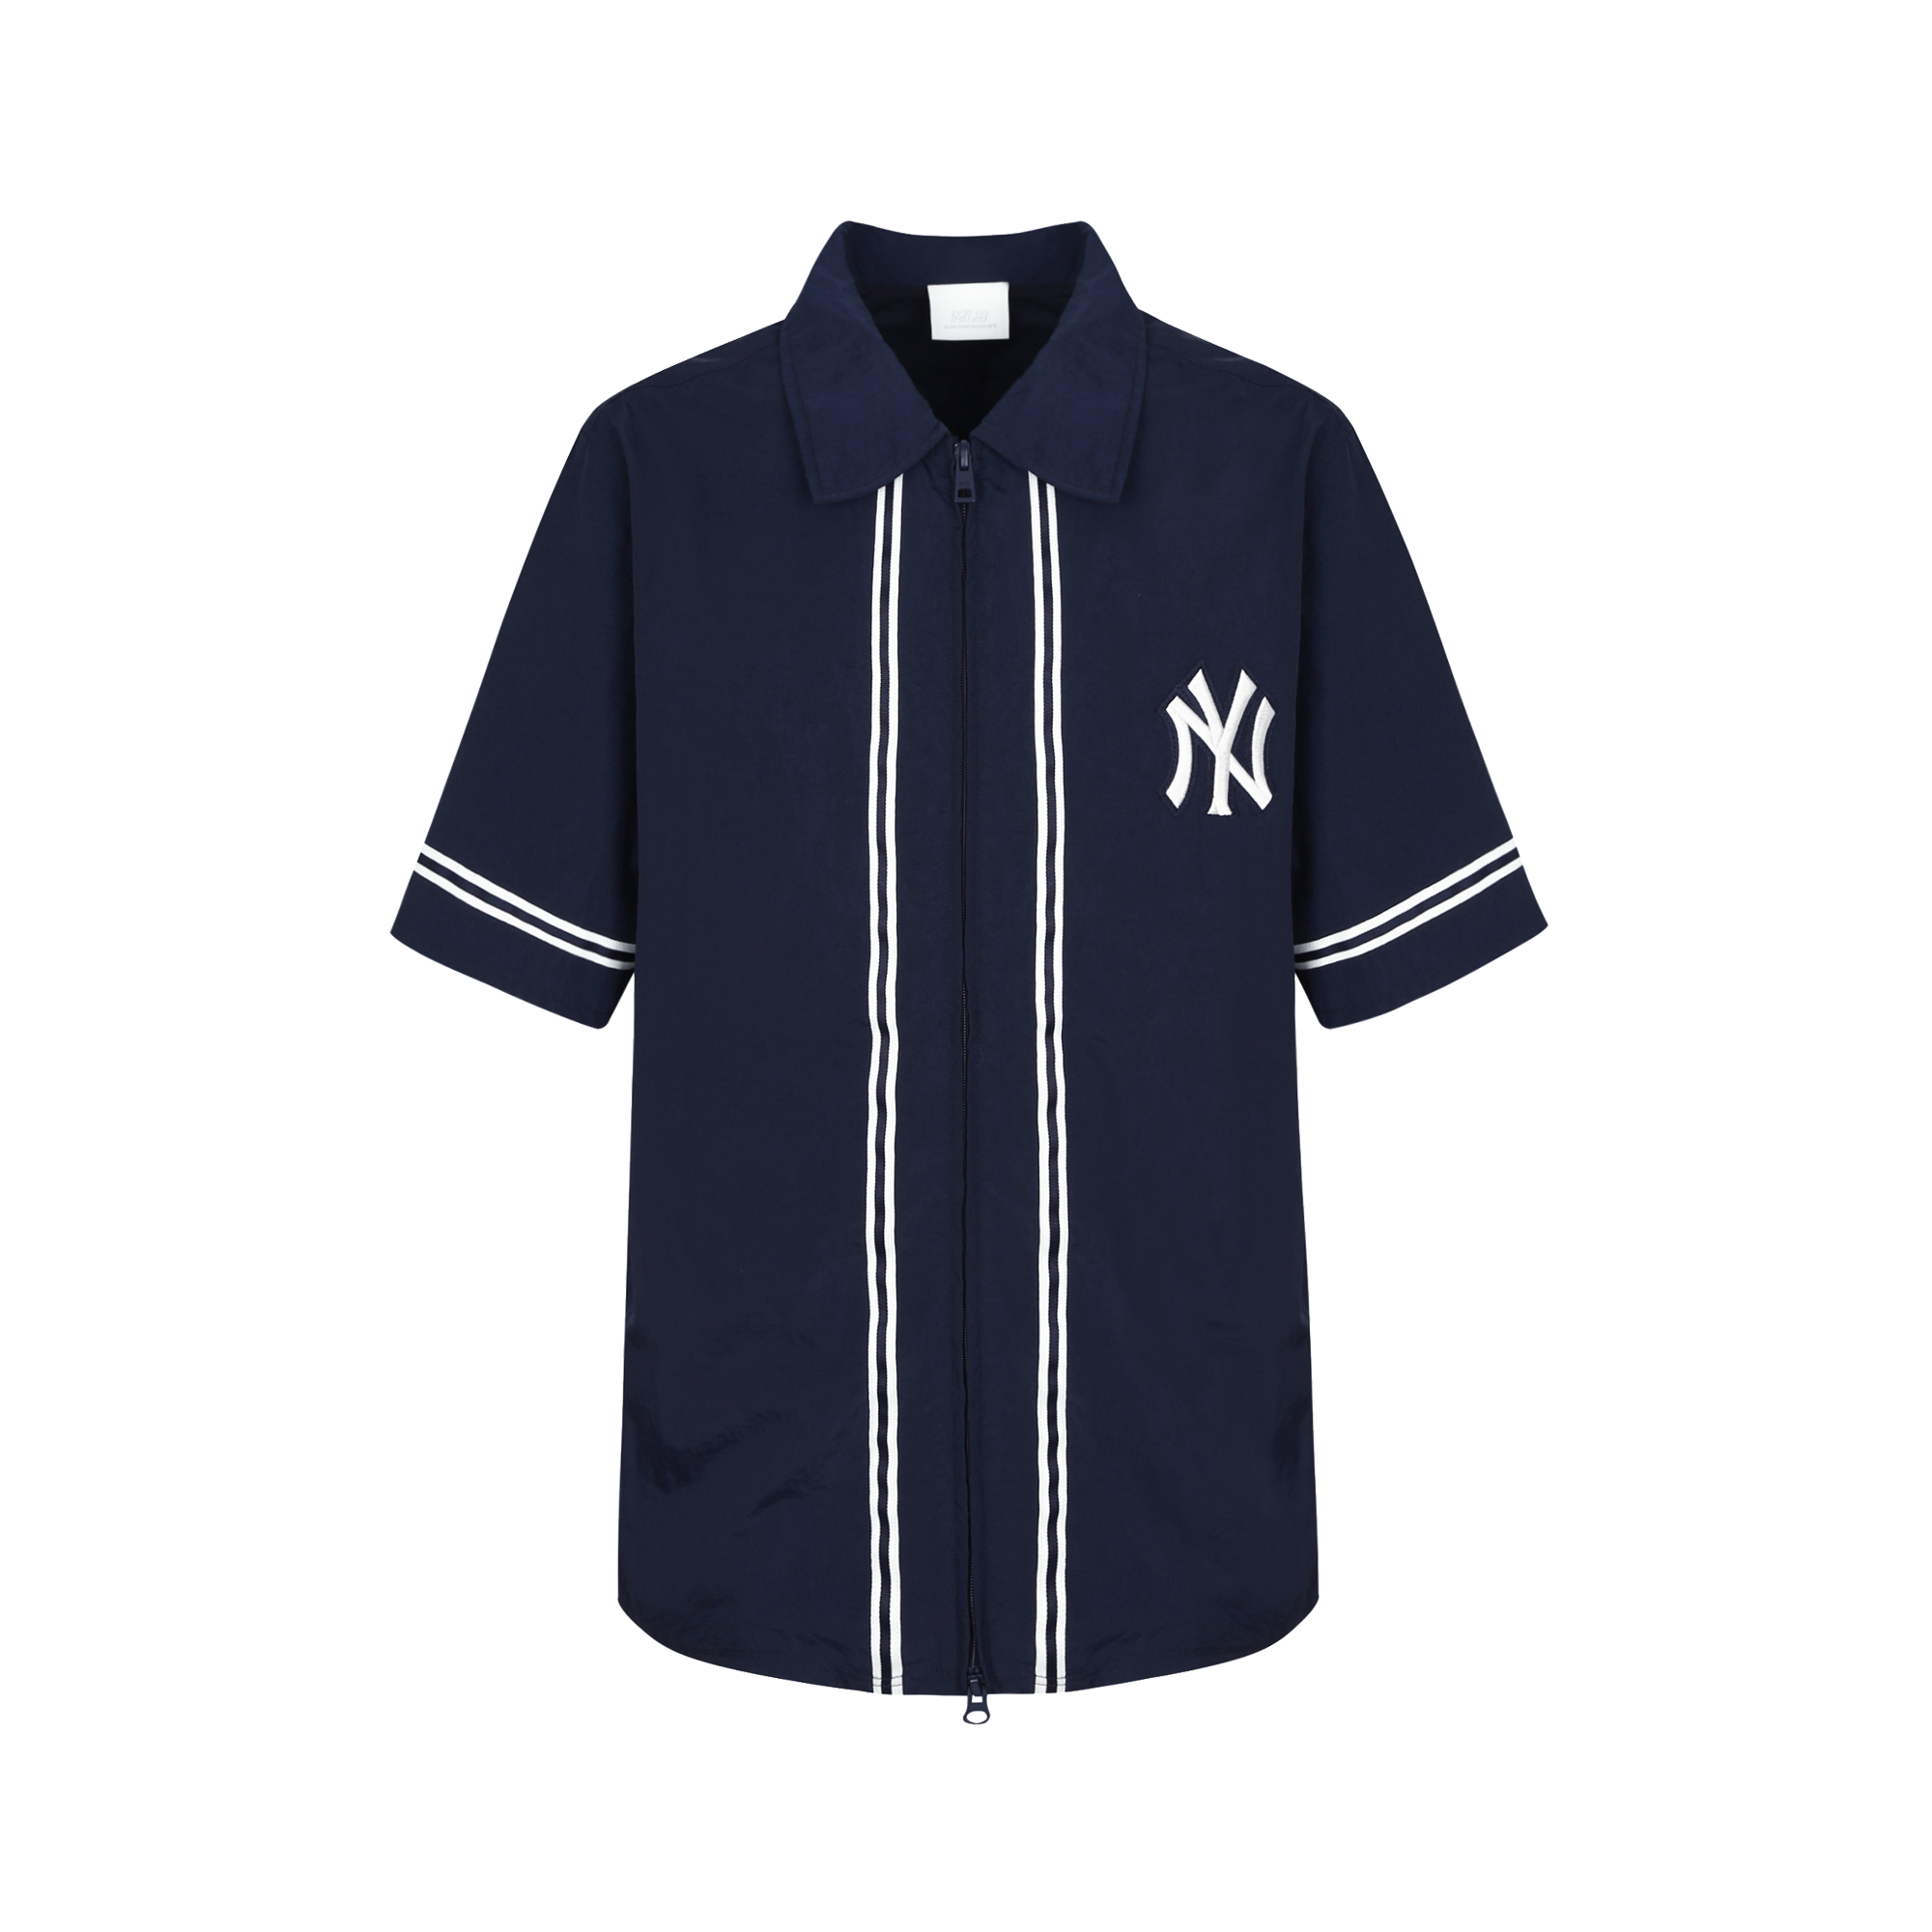 NEW YORK YANKEES ZIPPER PIPING SHIRT